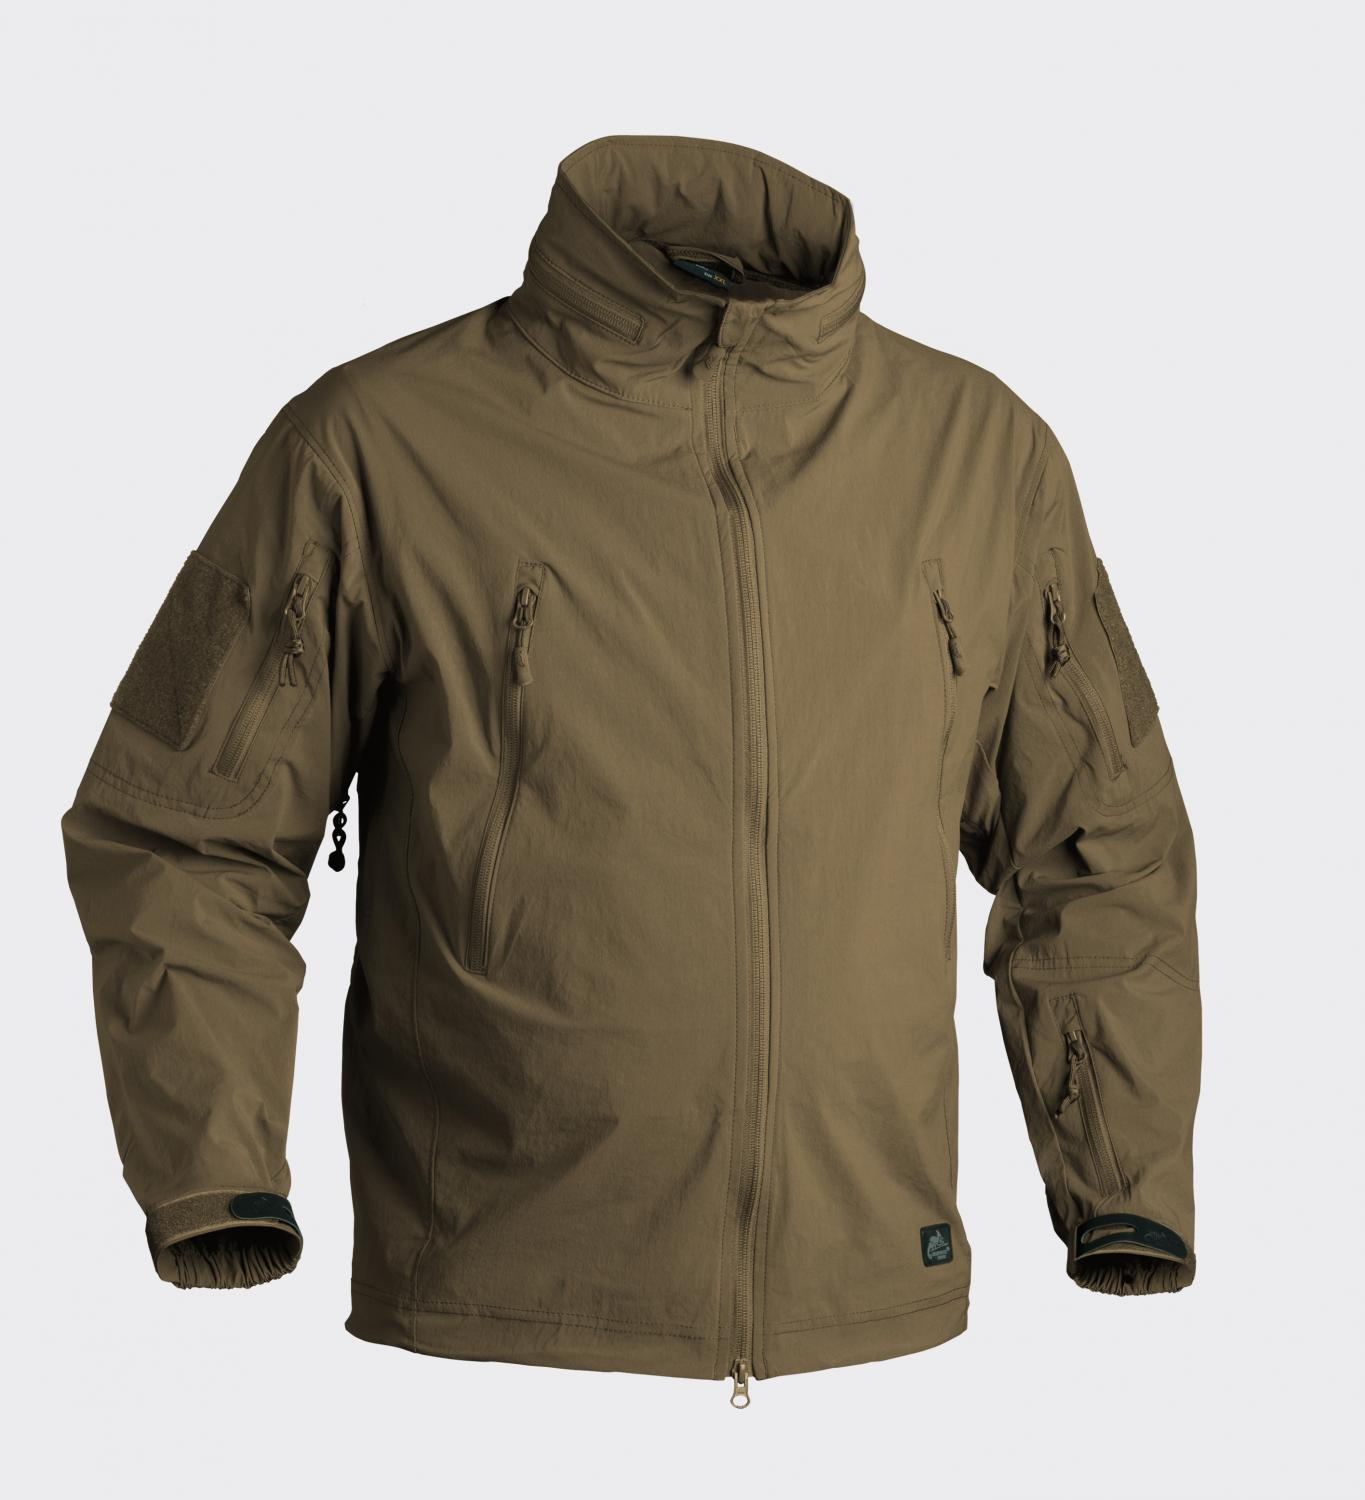 TROOPER - SoftShell Mud Brown